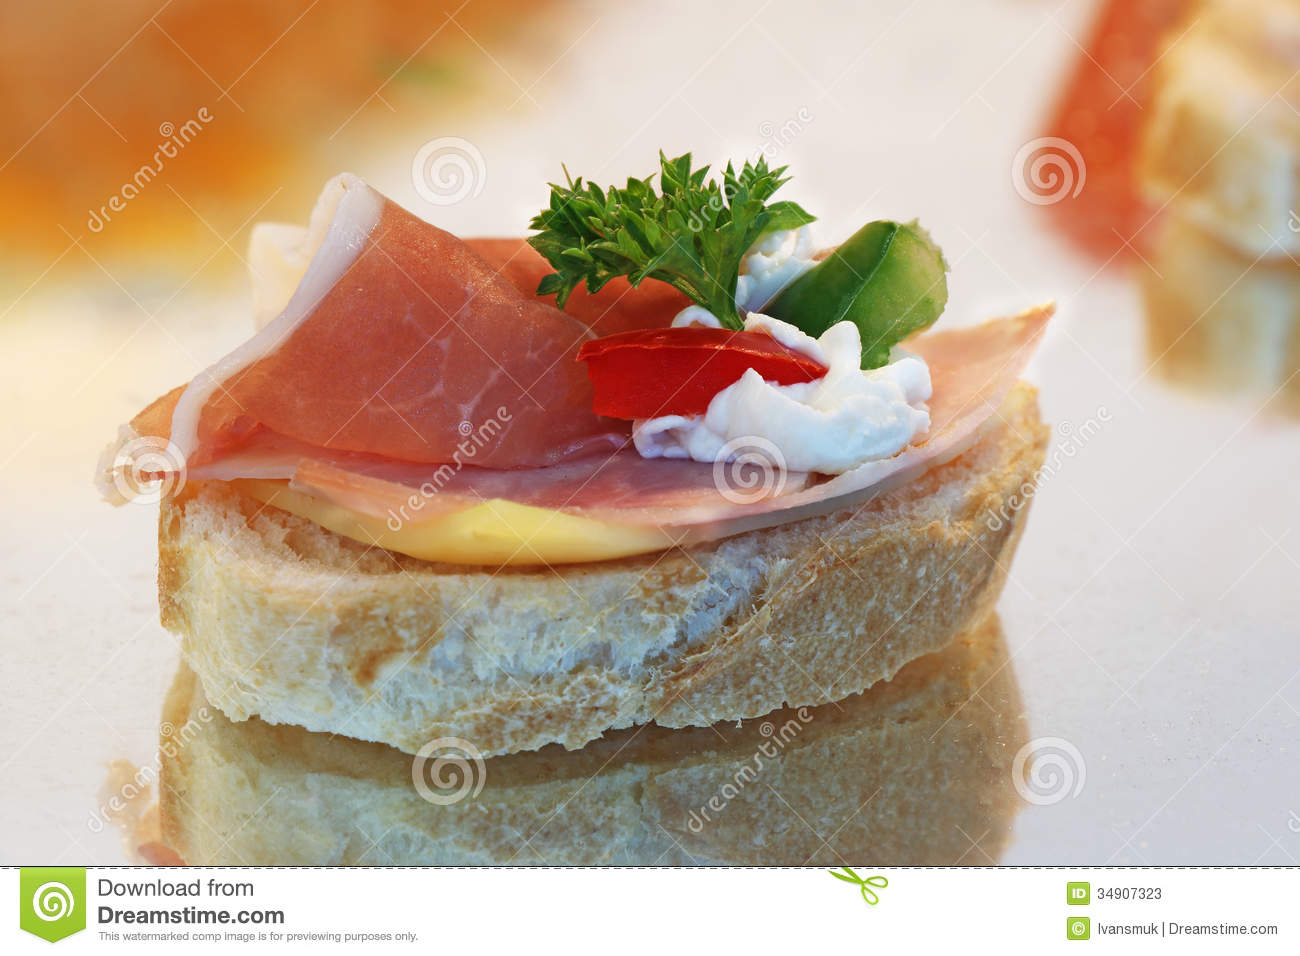 Canape sandwich stock image image of homemade for Canape sandwiches